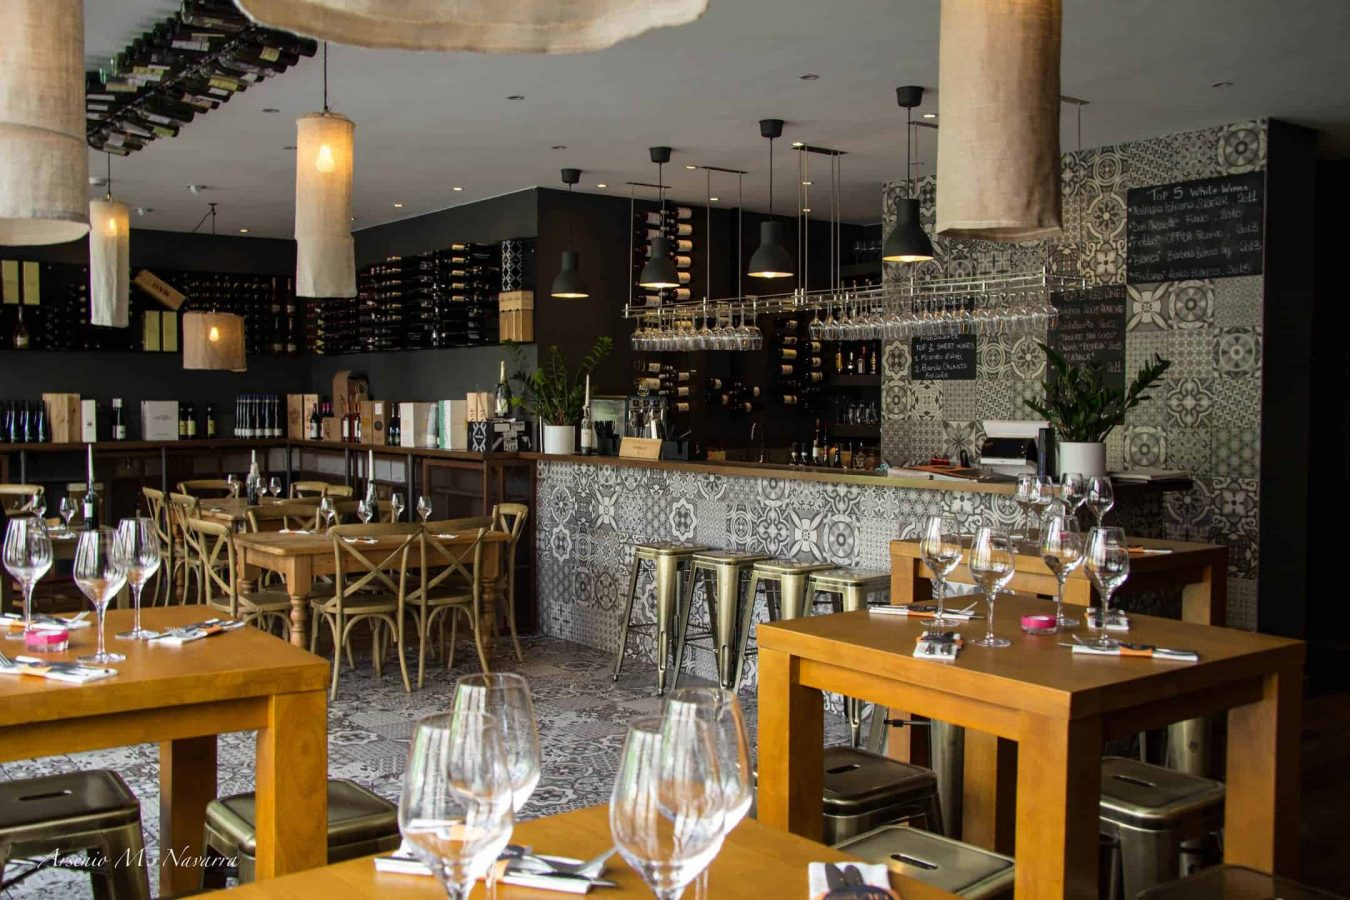 REVIEW: Enoteca Rabezzana, Farringdon